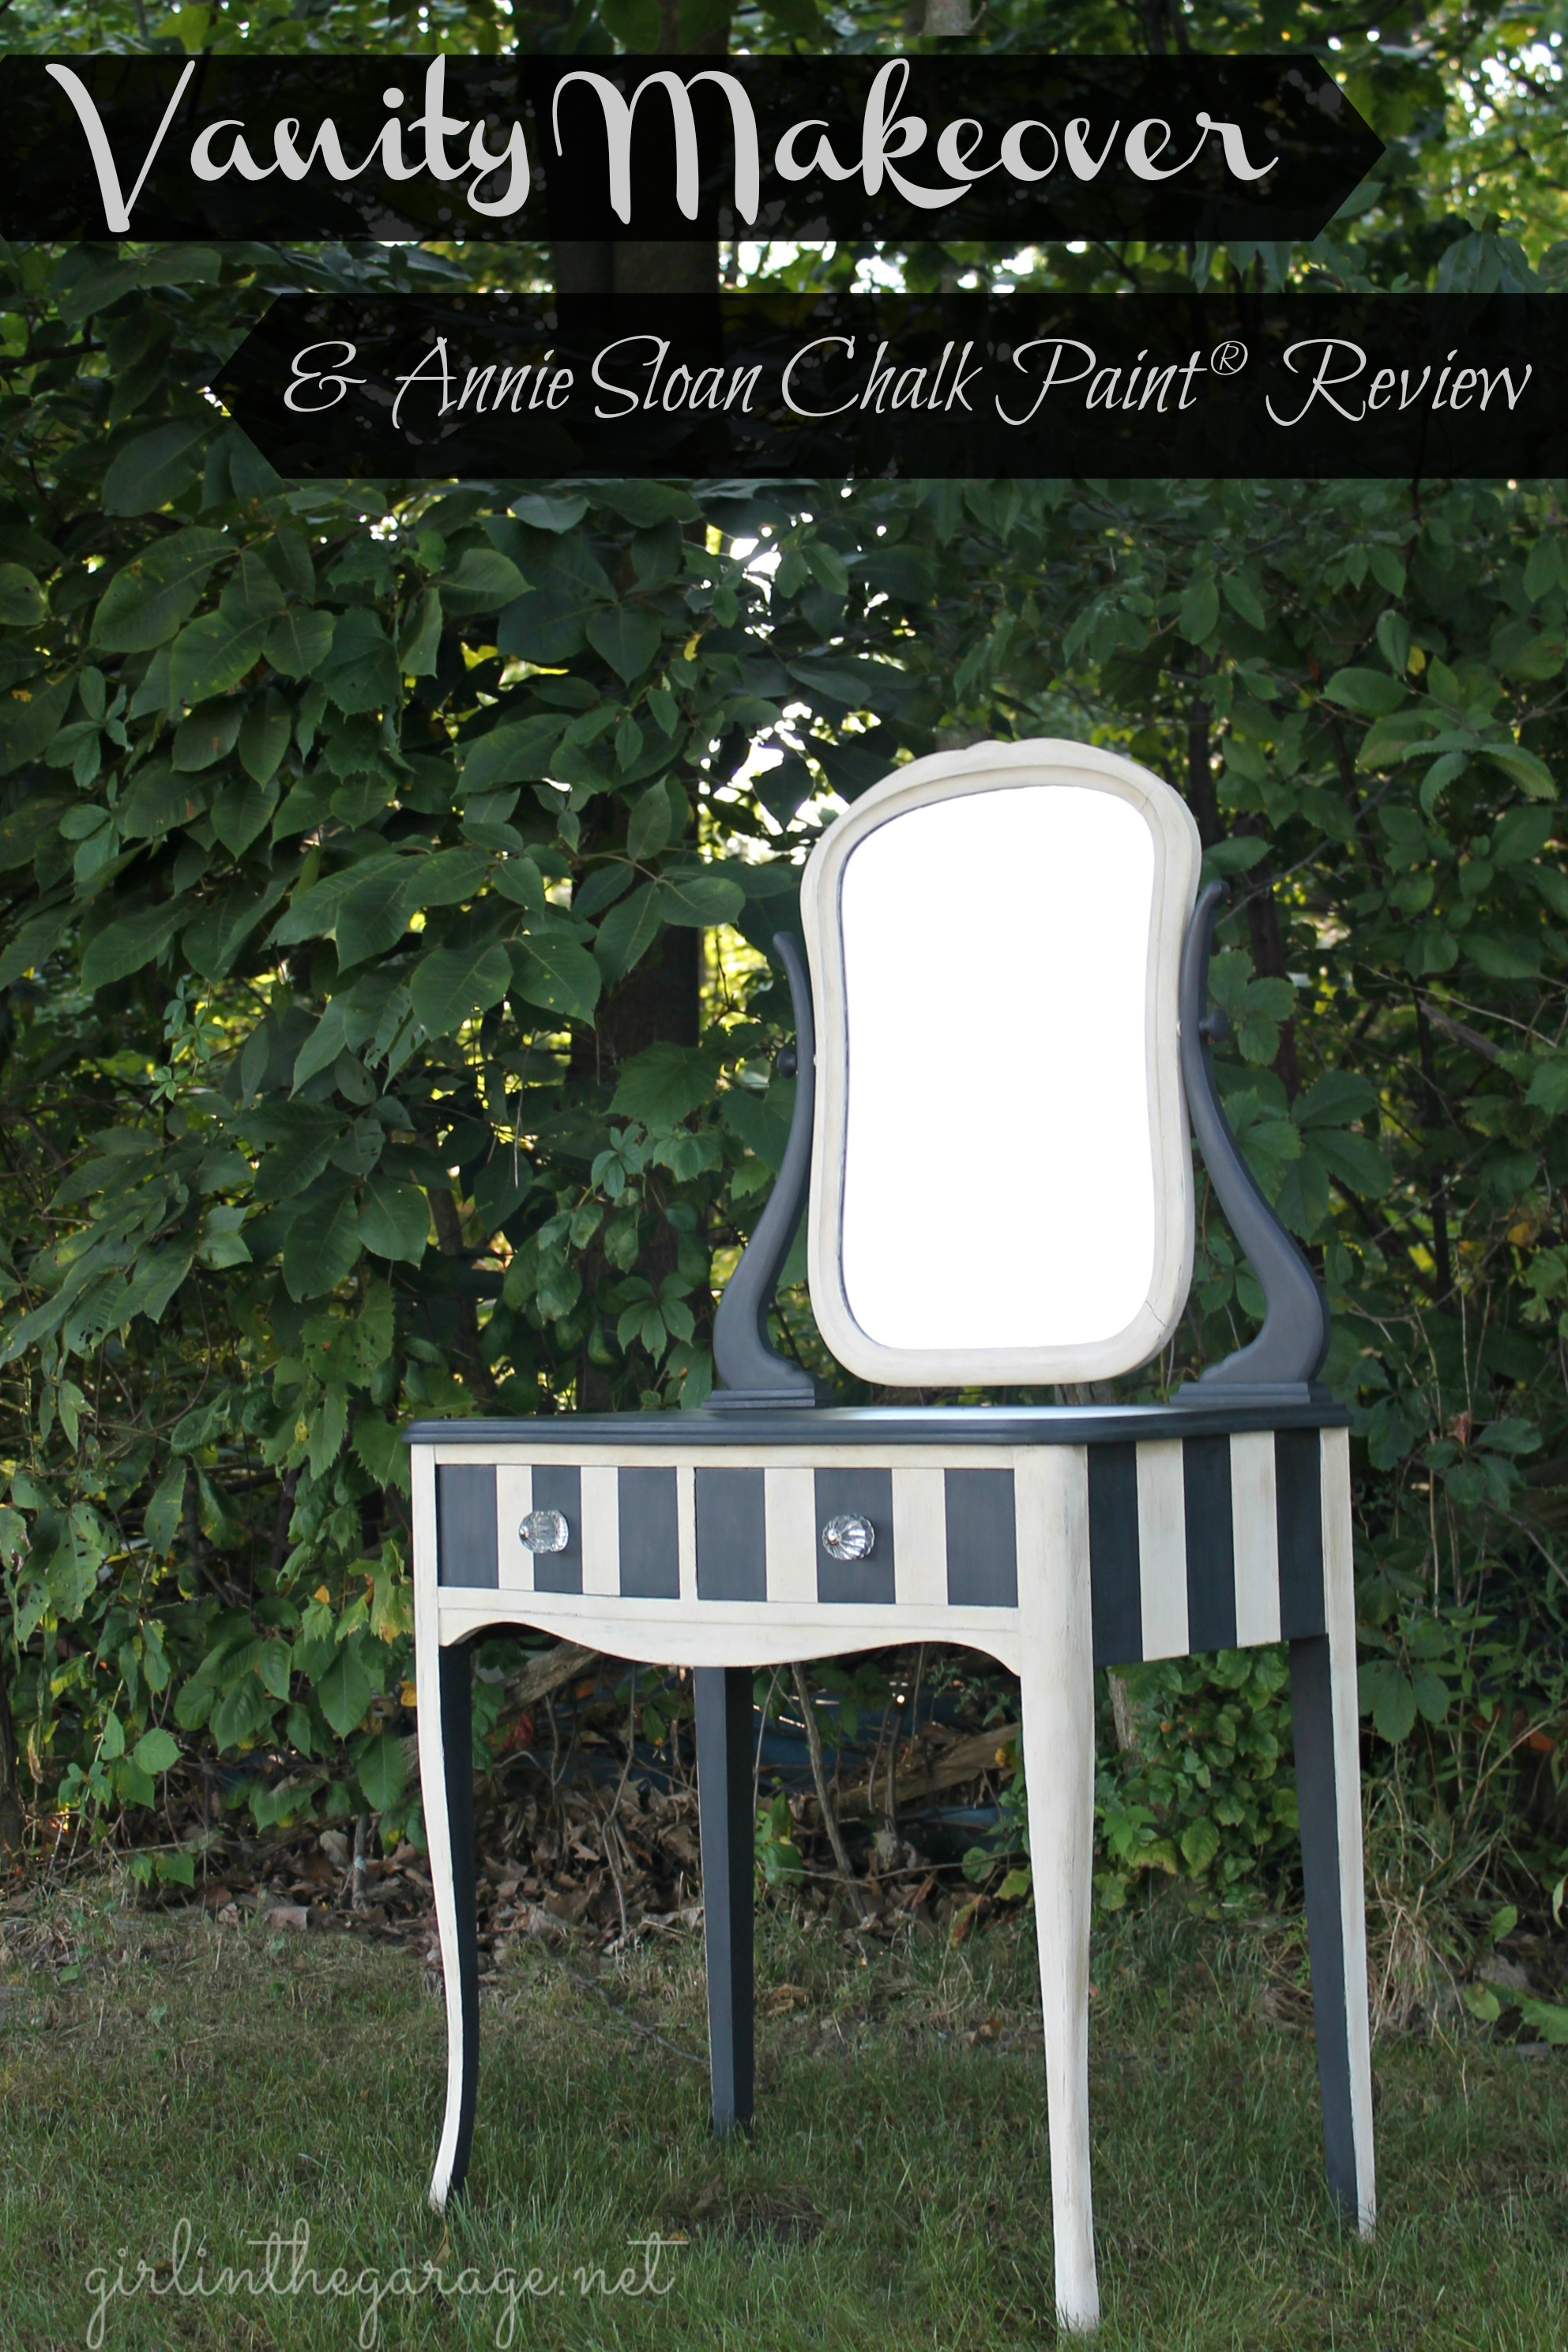 Gorgeous striped vintage vanity makeover with Annie Sloan Chalk Paint and wax. Also includes a review of Annie Sloan Chalk Paint products and advice.